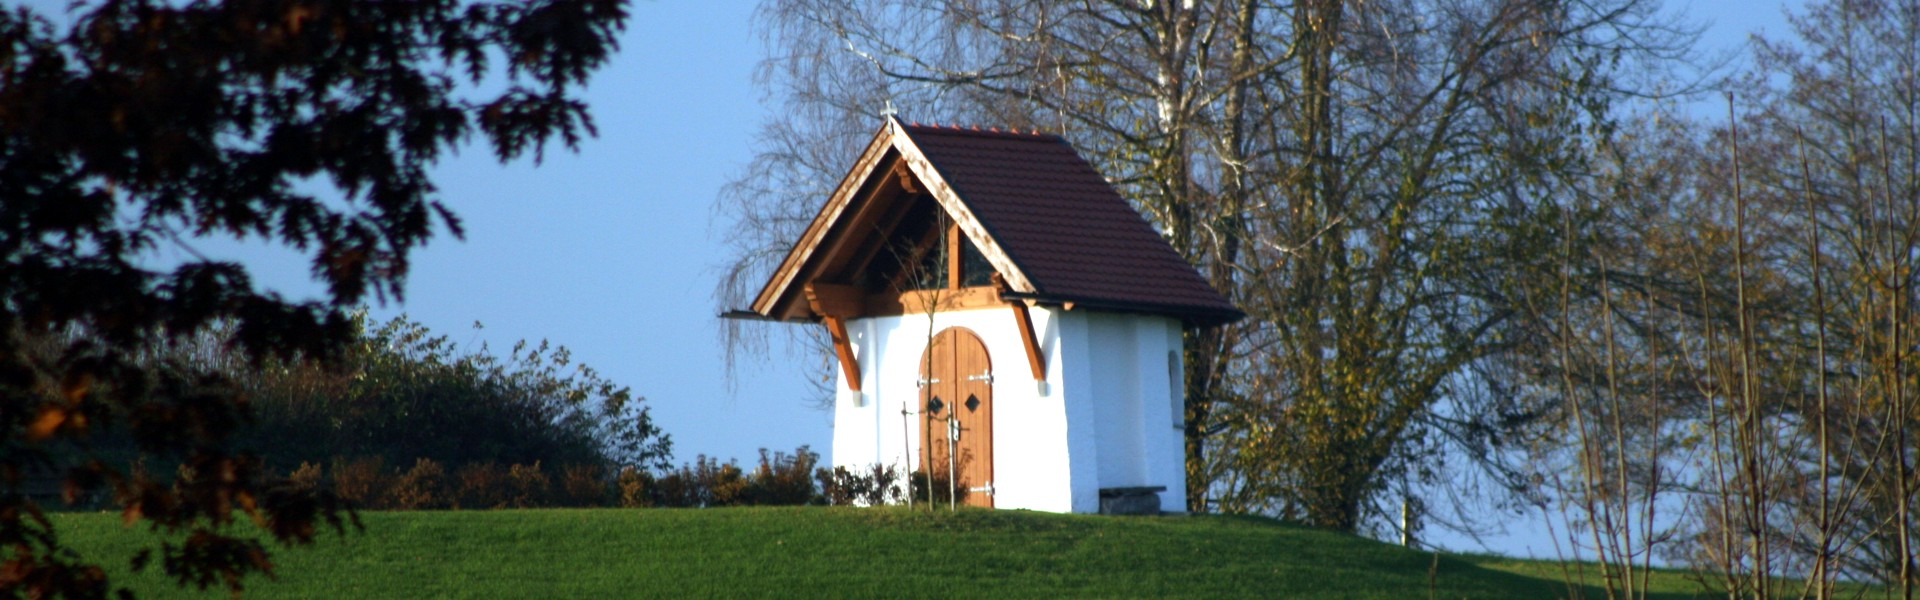 Kapelle in Raßbach